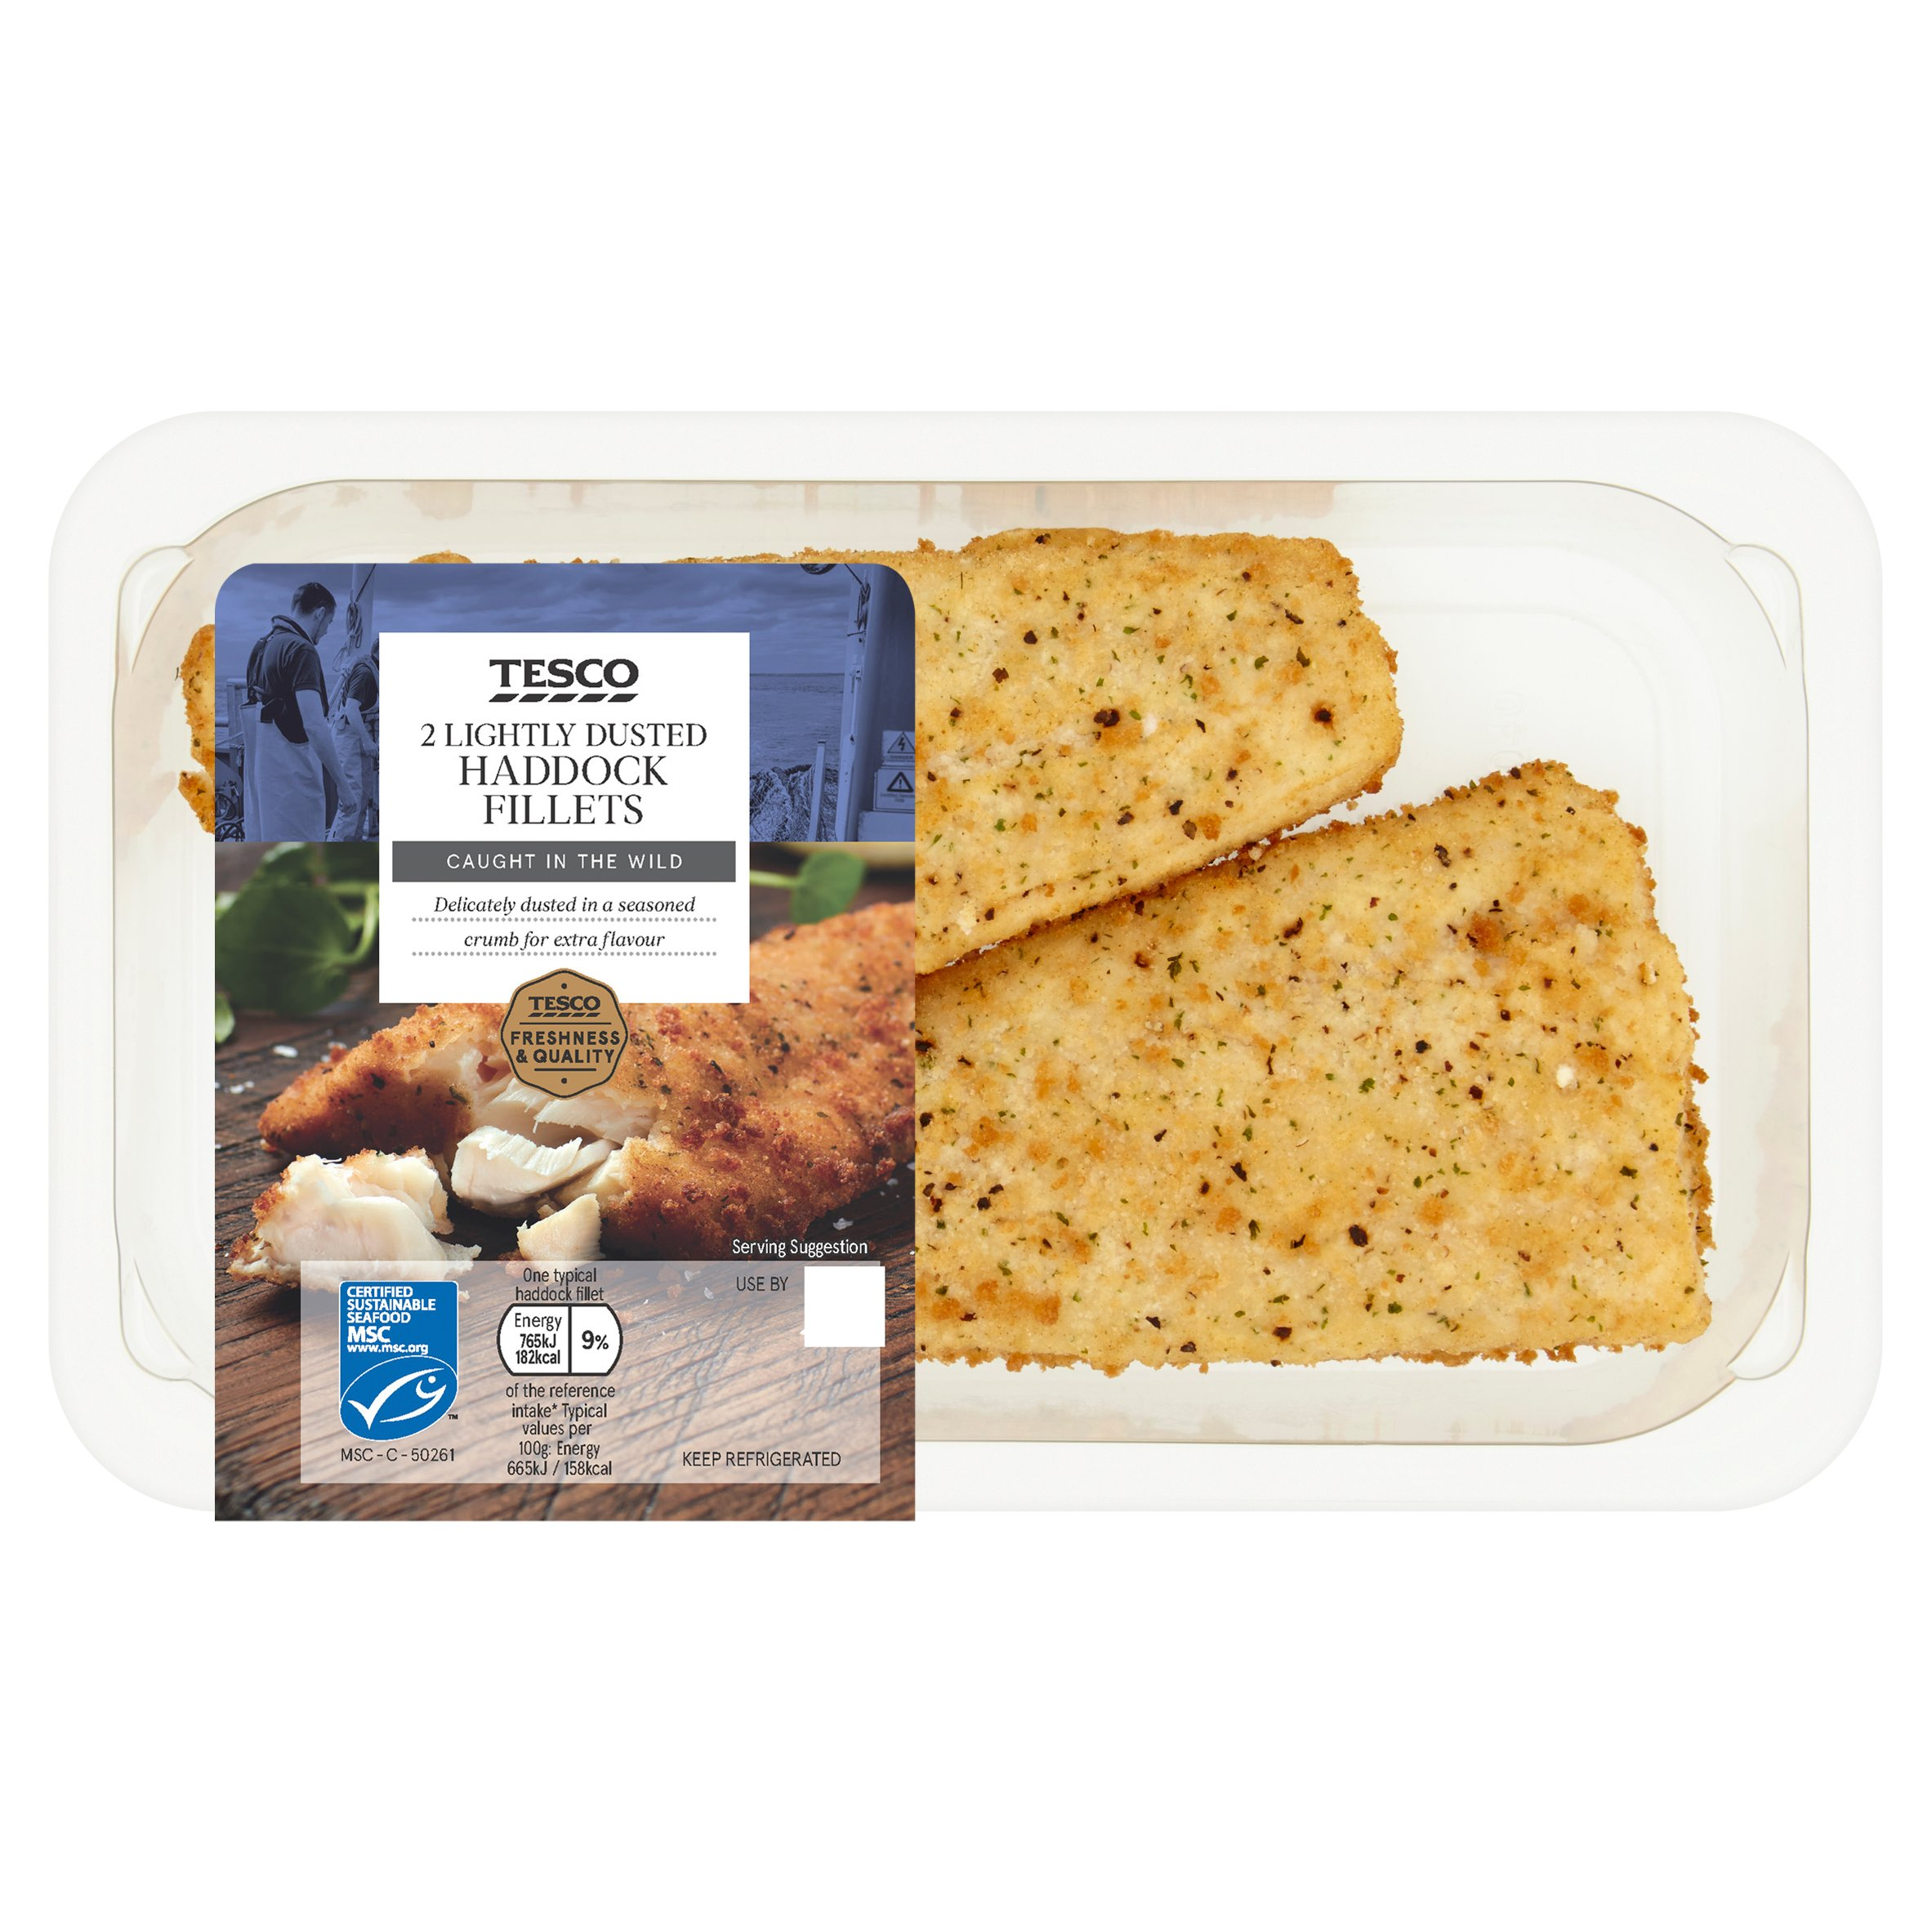 Tesco Lightly Dusted Haddock Fillets 255G